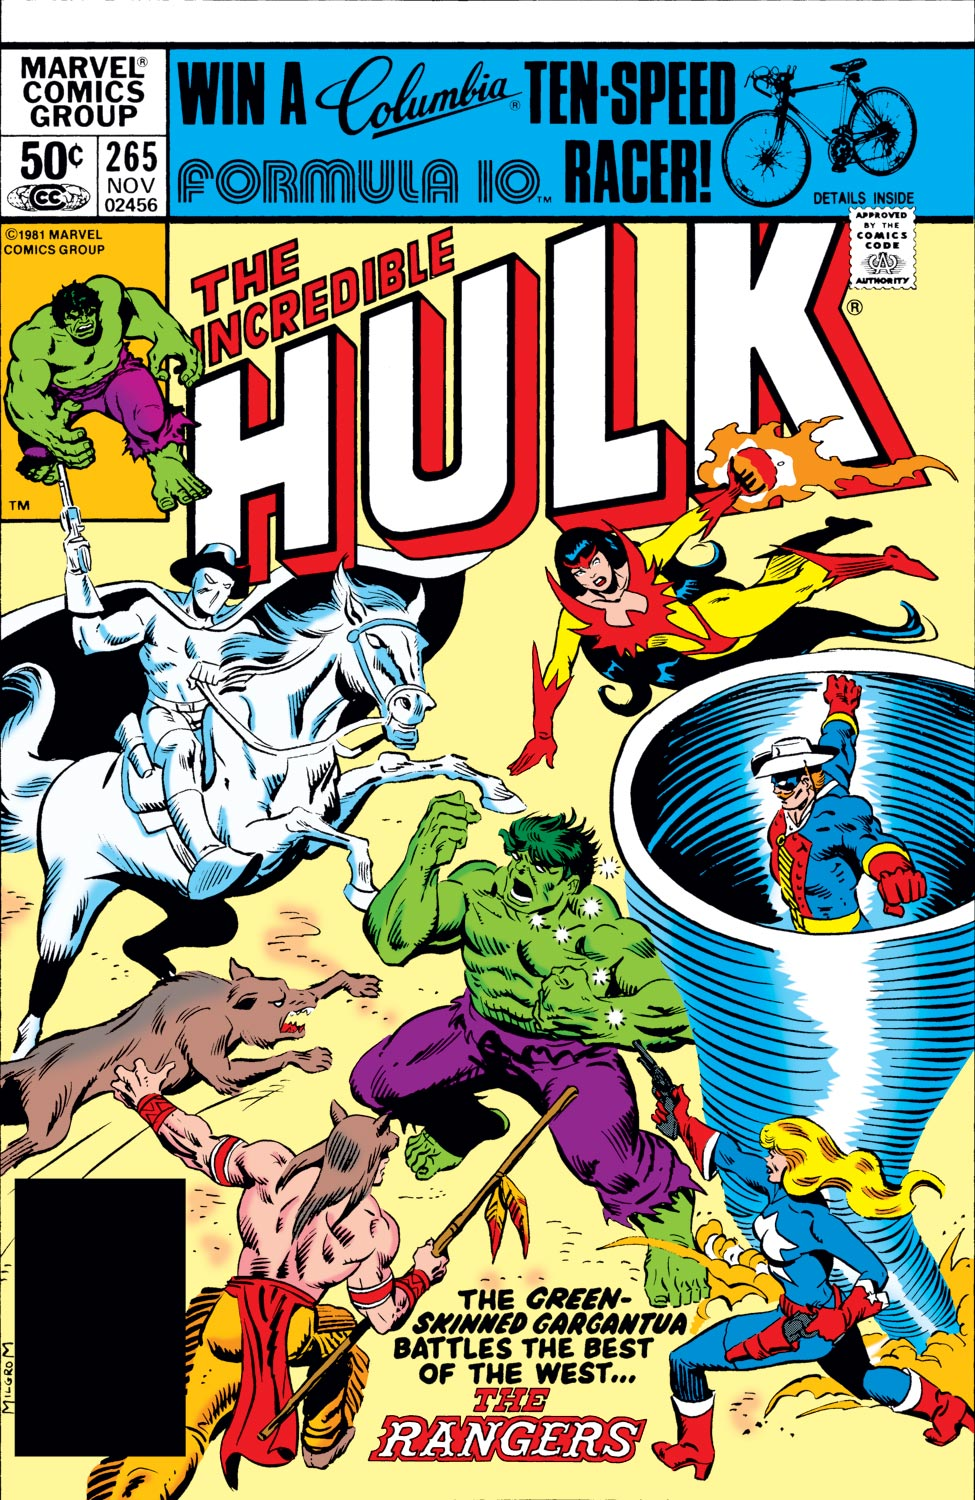 Incredible Hulk (1962) #265